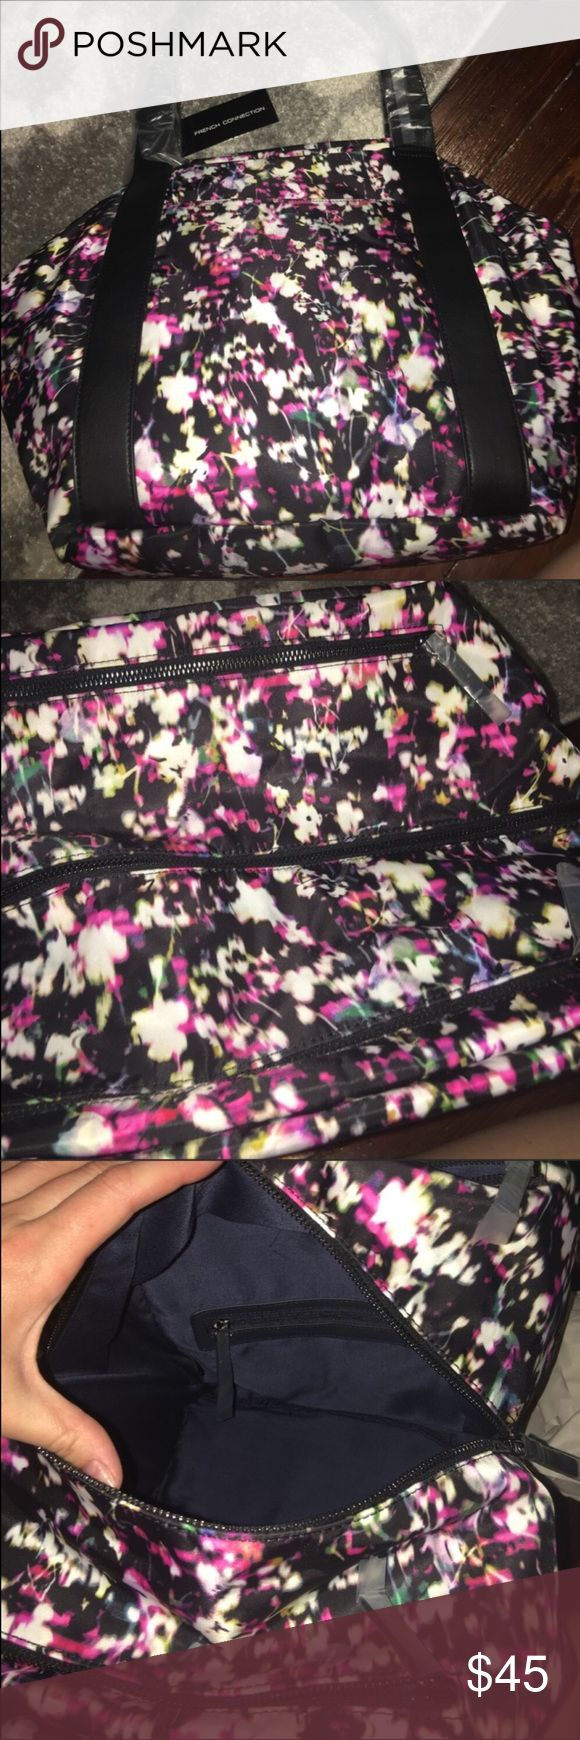 """French Connection Janice tote in midnight bloom Gorgeous tote! 18"""" wide and 12.5"""" high and 6 5/8"""" deep. Two top pockets, front and back pocket and two interior pockets provide lots of room French Connection Bags Totes"""